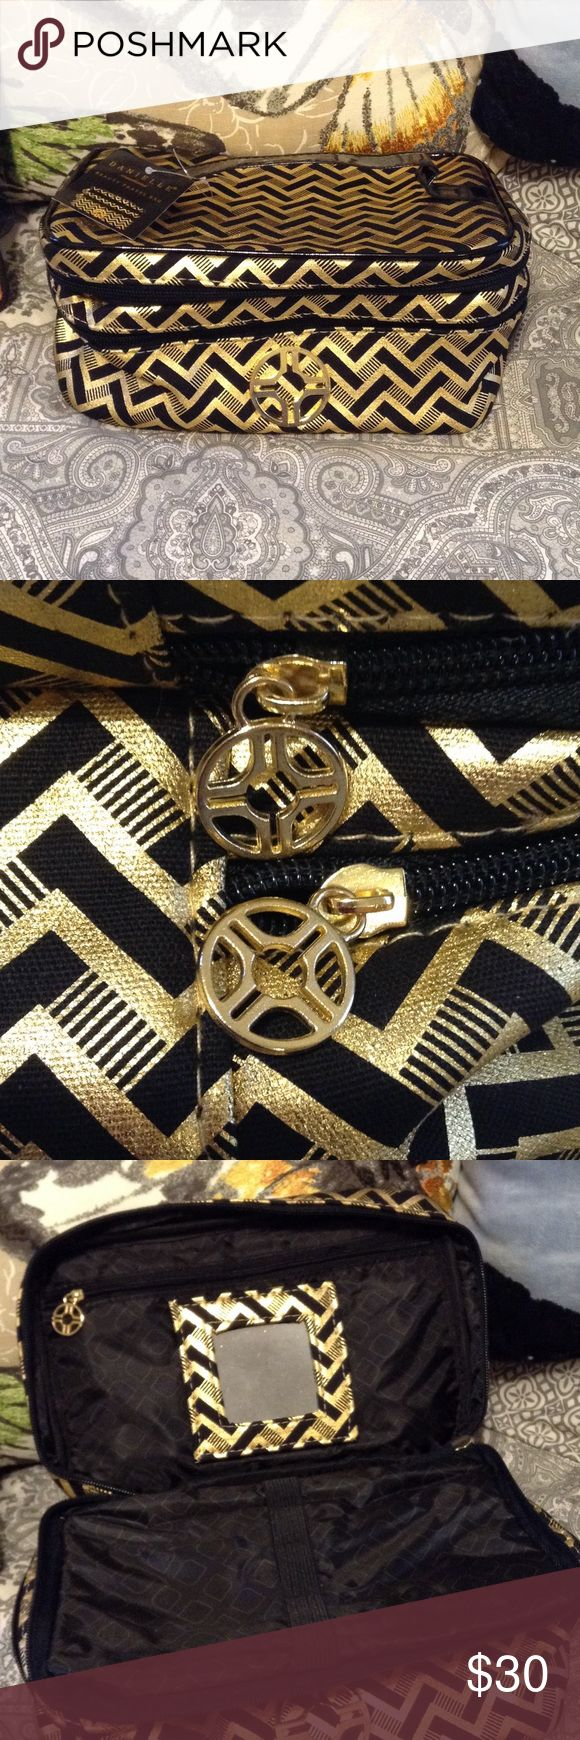 🆕💄Make-Up, Jewelry, Etc. Bag 💍🕶👙 NWT! Black and Gold Zigzag Print Beauty Travel Bag. Double Compartment. Top has a Zippered Pocket, Removable Mirror, and Elastic Band to Hold Brushes, Combs, etc. Bottom is one big compartment. Black Handle Across Top. Danielle Brand Danielle Bags